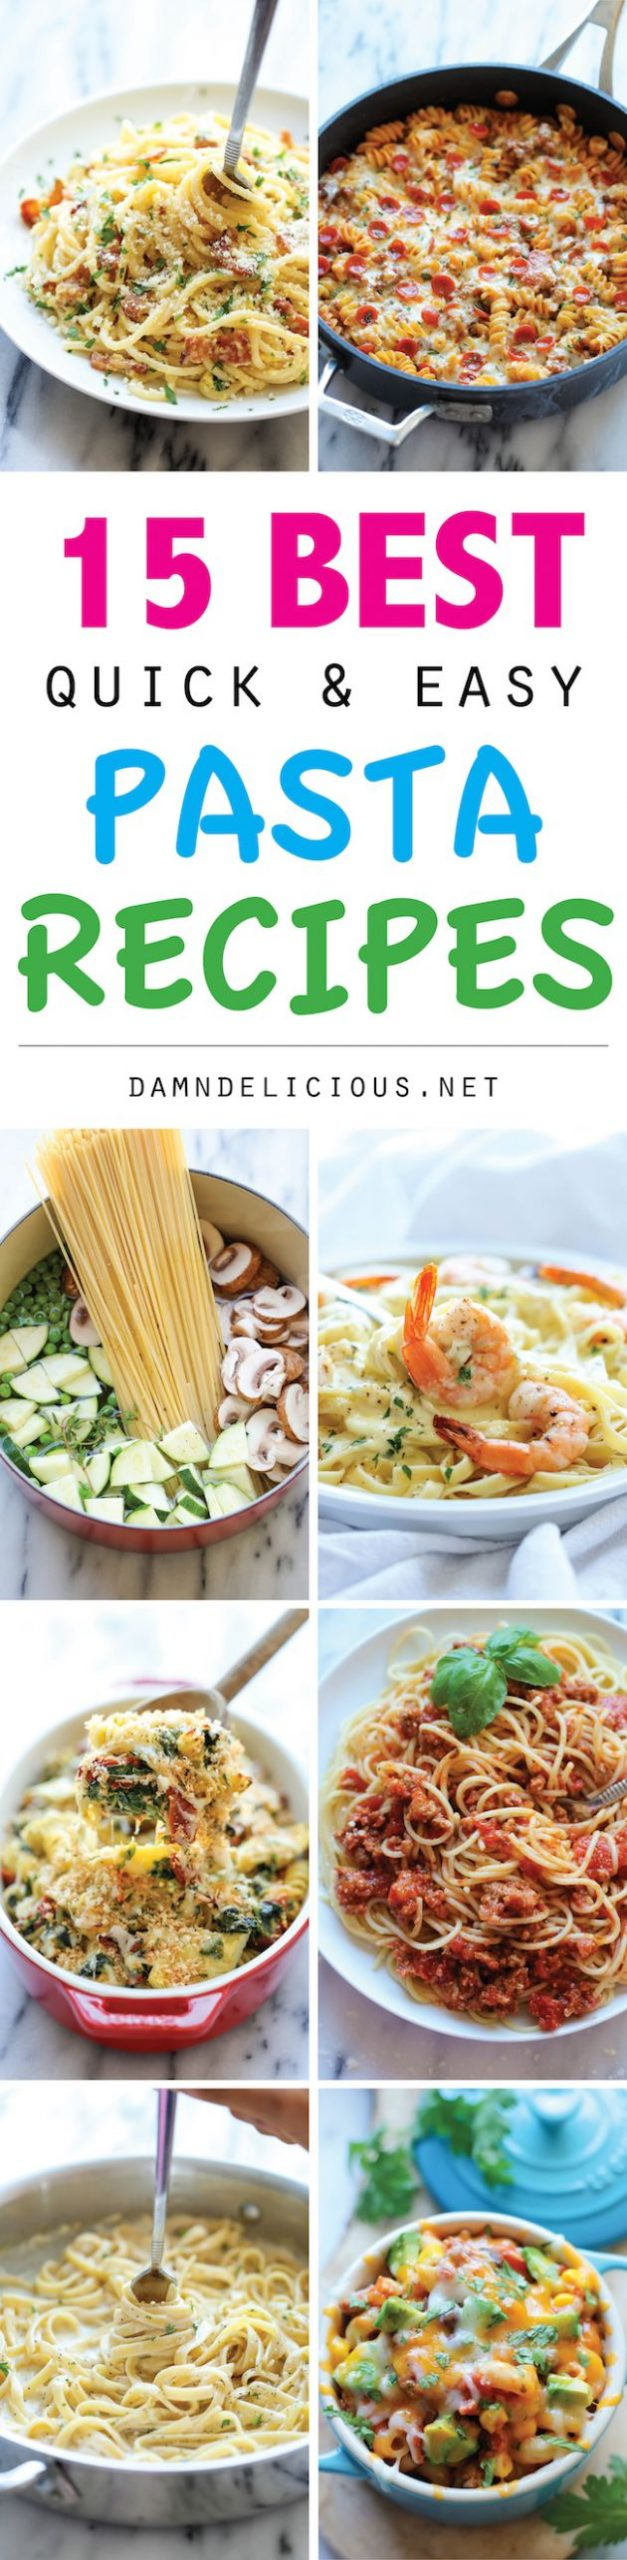 11 Best Quick and Easy Pasta Recipes - Damn Delicious - Pasta Recipes Quick And Easy